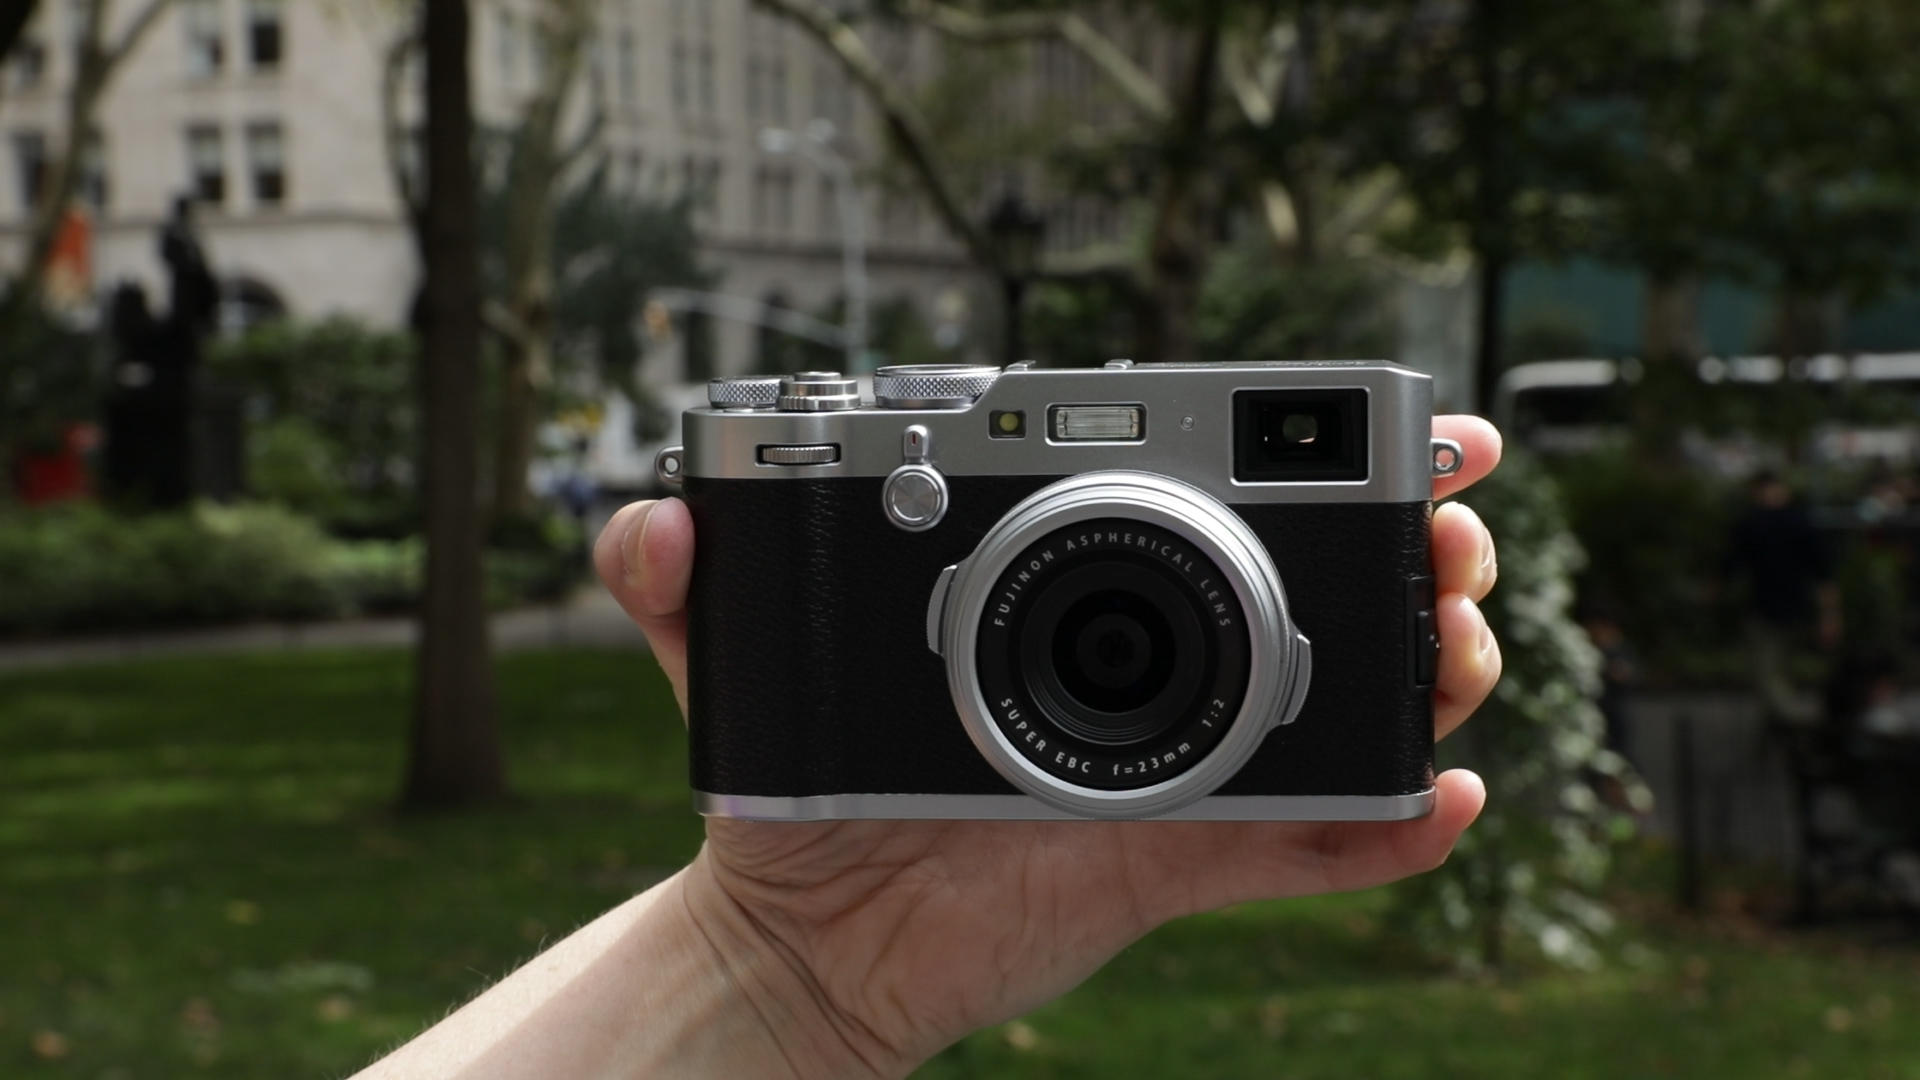 Video: Fujifilm X100F: A great enthusiast compact for manual fans